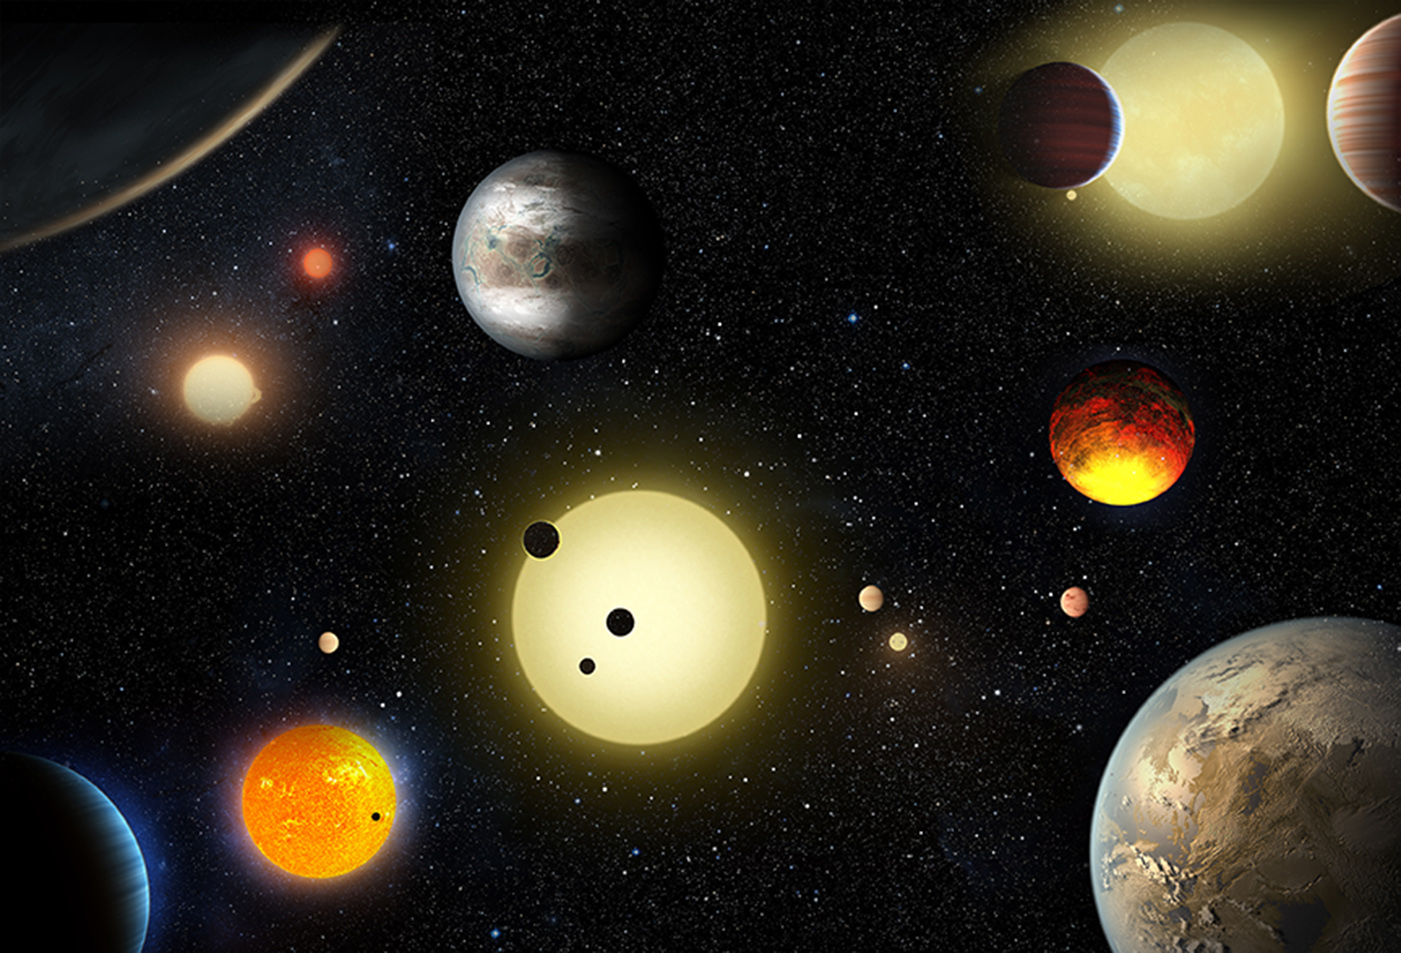 WATCH LIVE NOW: Planetary Science Vision 2050 Workshop